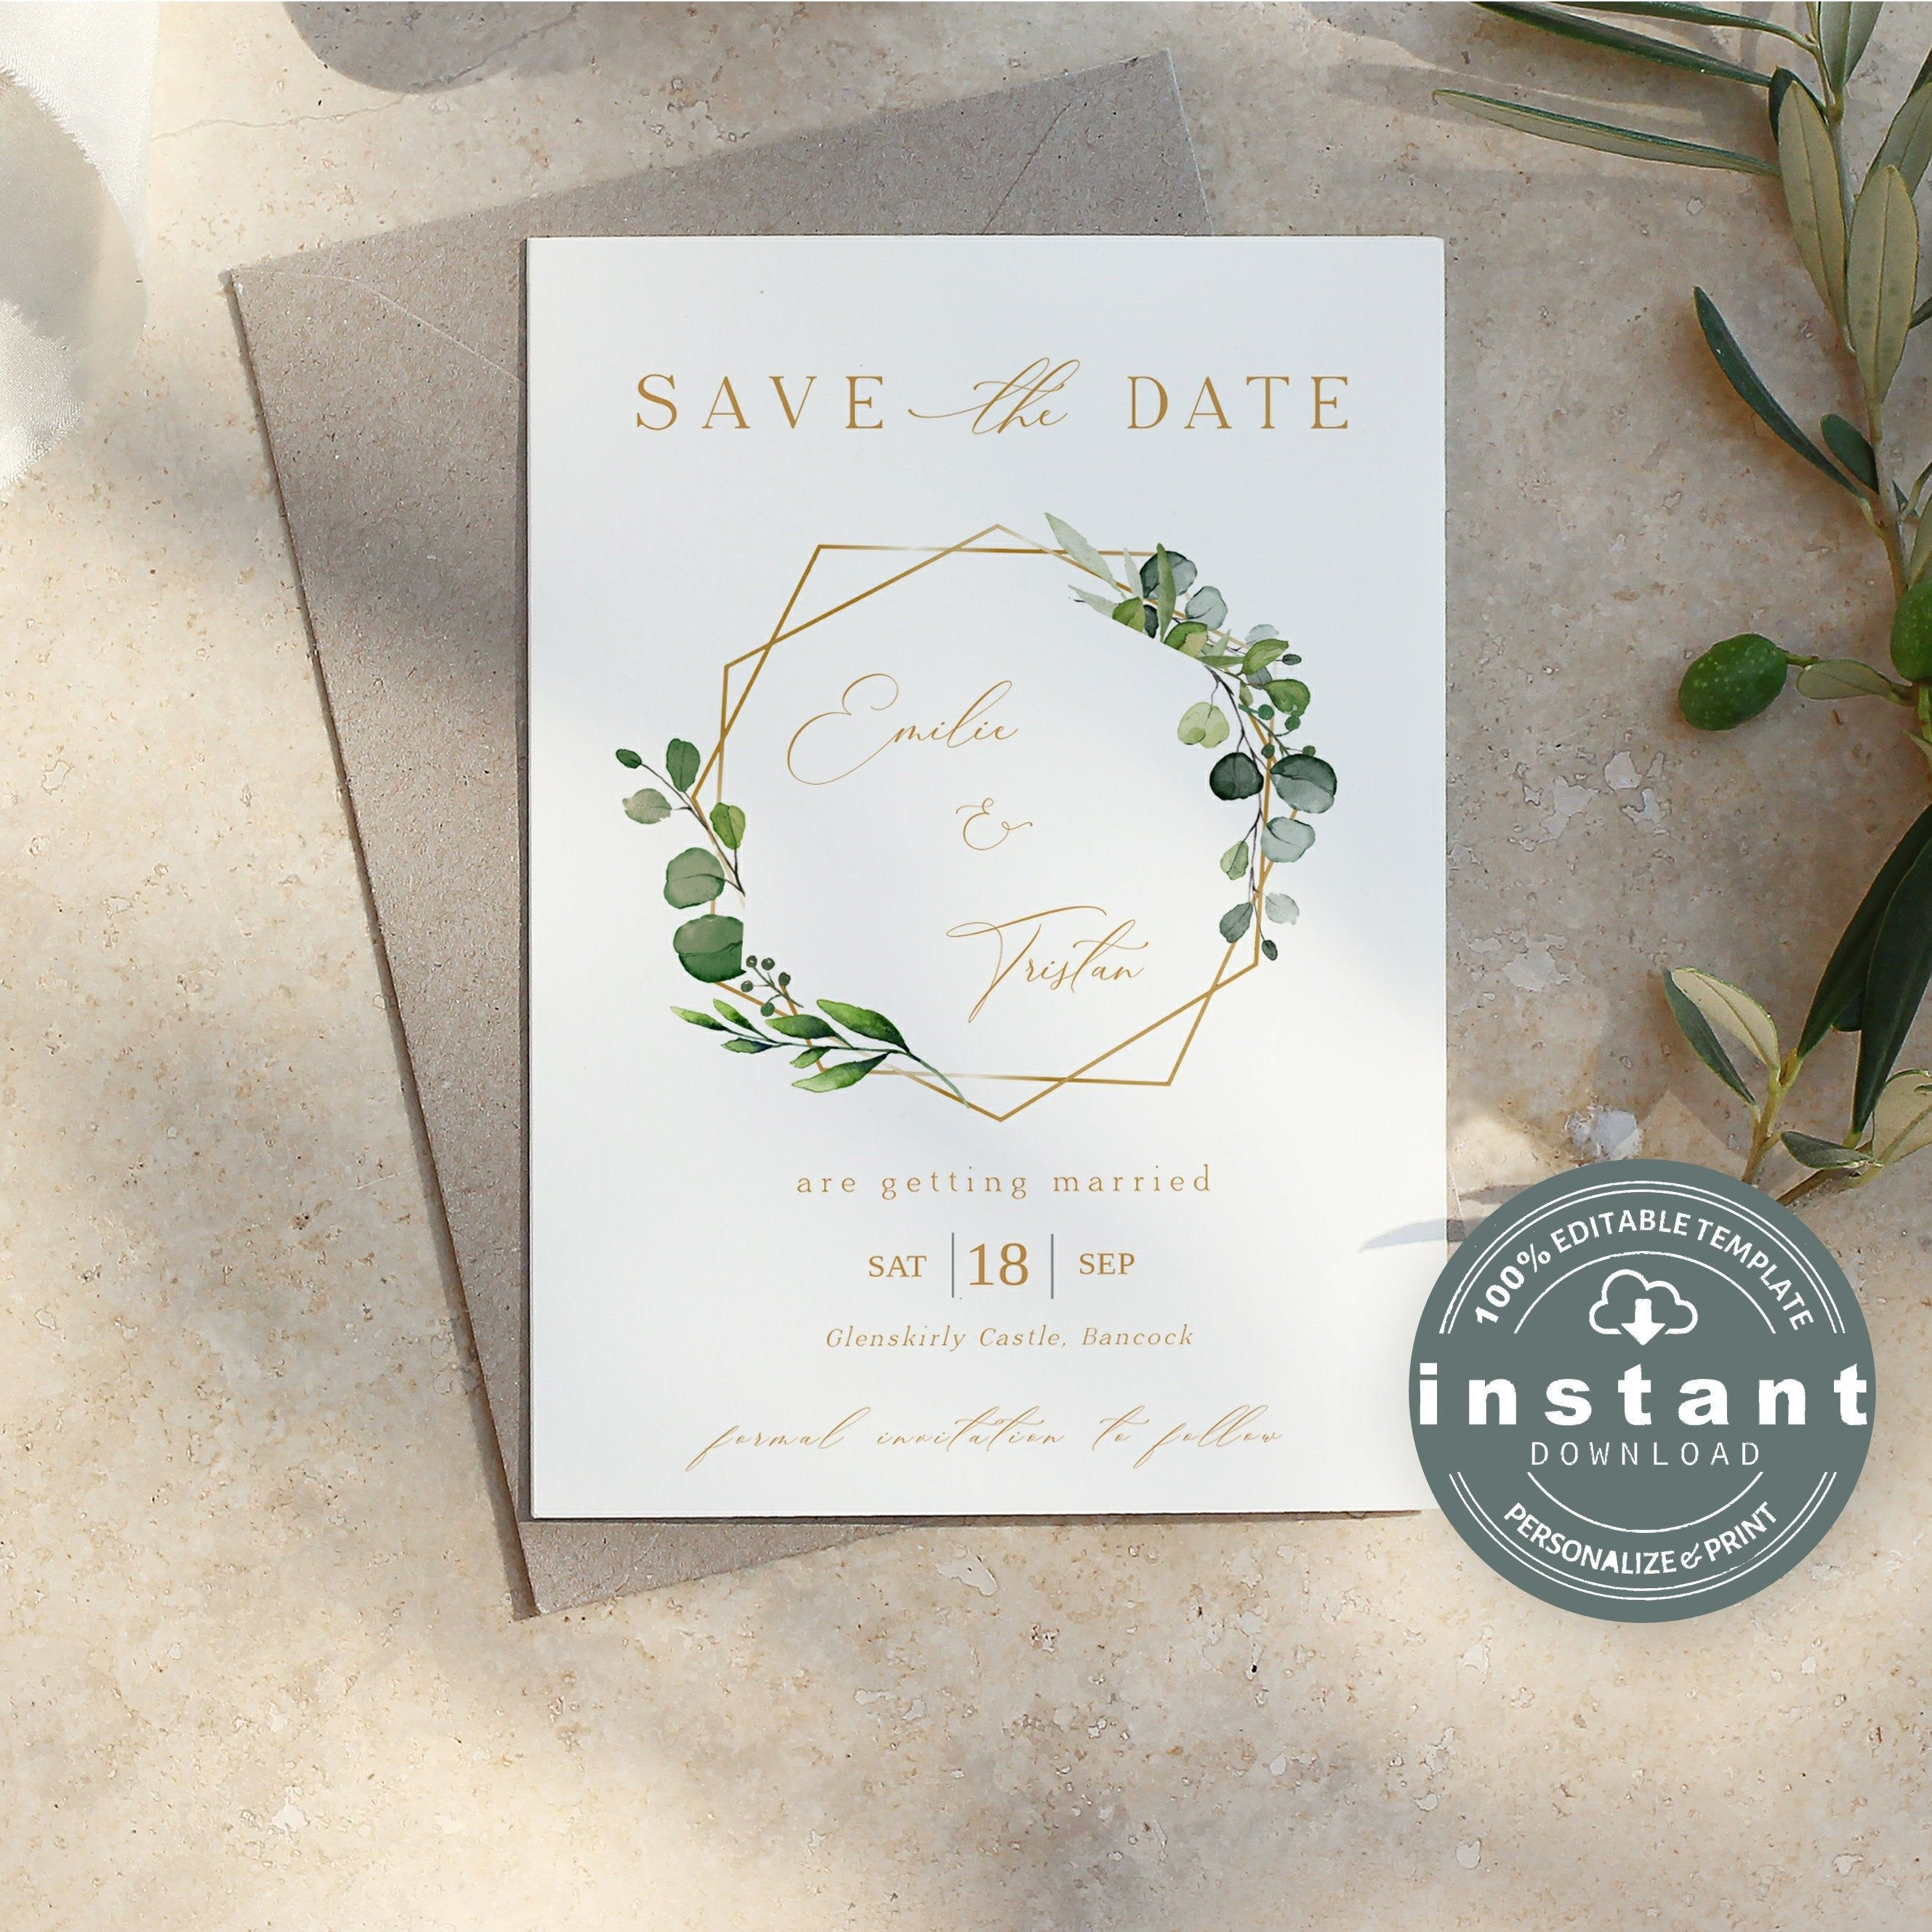 Wedding Save The Date Card Printable Instant Download Etsy In 2021 Wedding Saving Wedding Save The Dates Save The Date Invitations